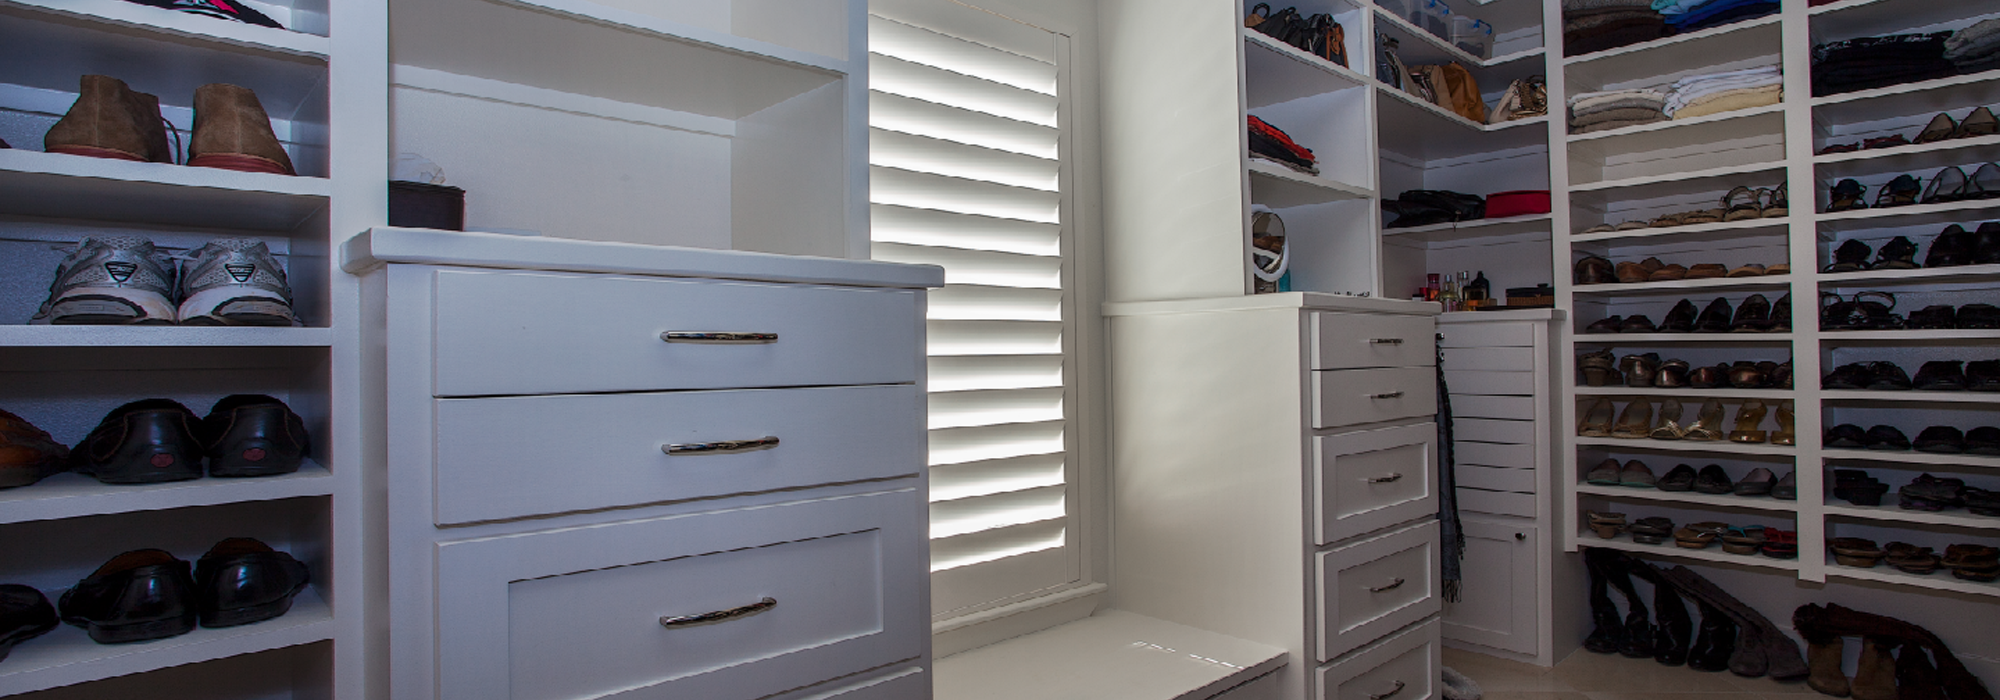 Shutters in Closet by Southwest of Phoenix